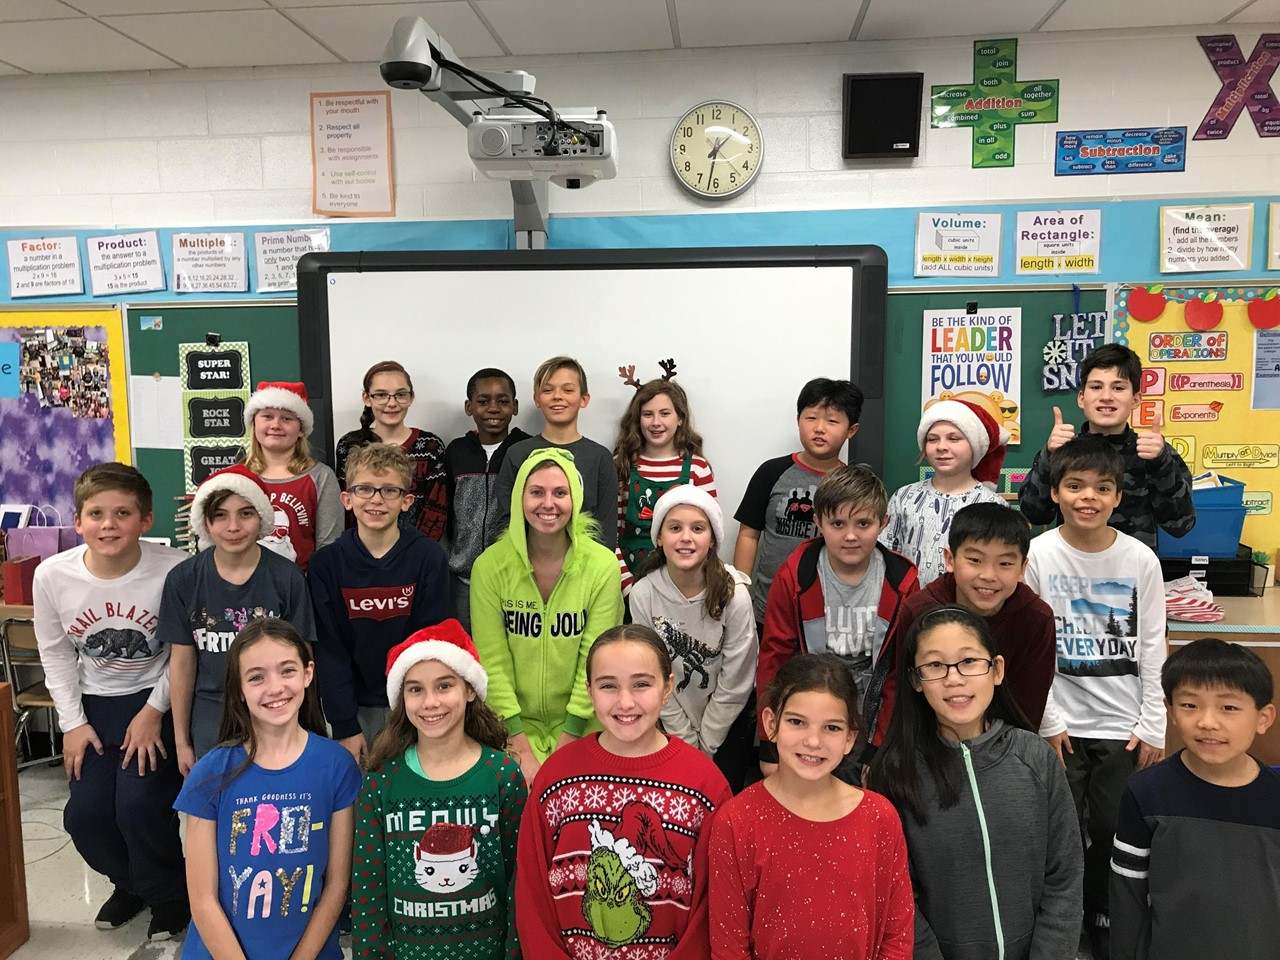 Ms. Wessel's 5th grade class holiday whole class picture.